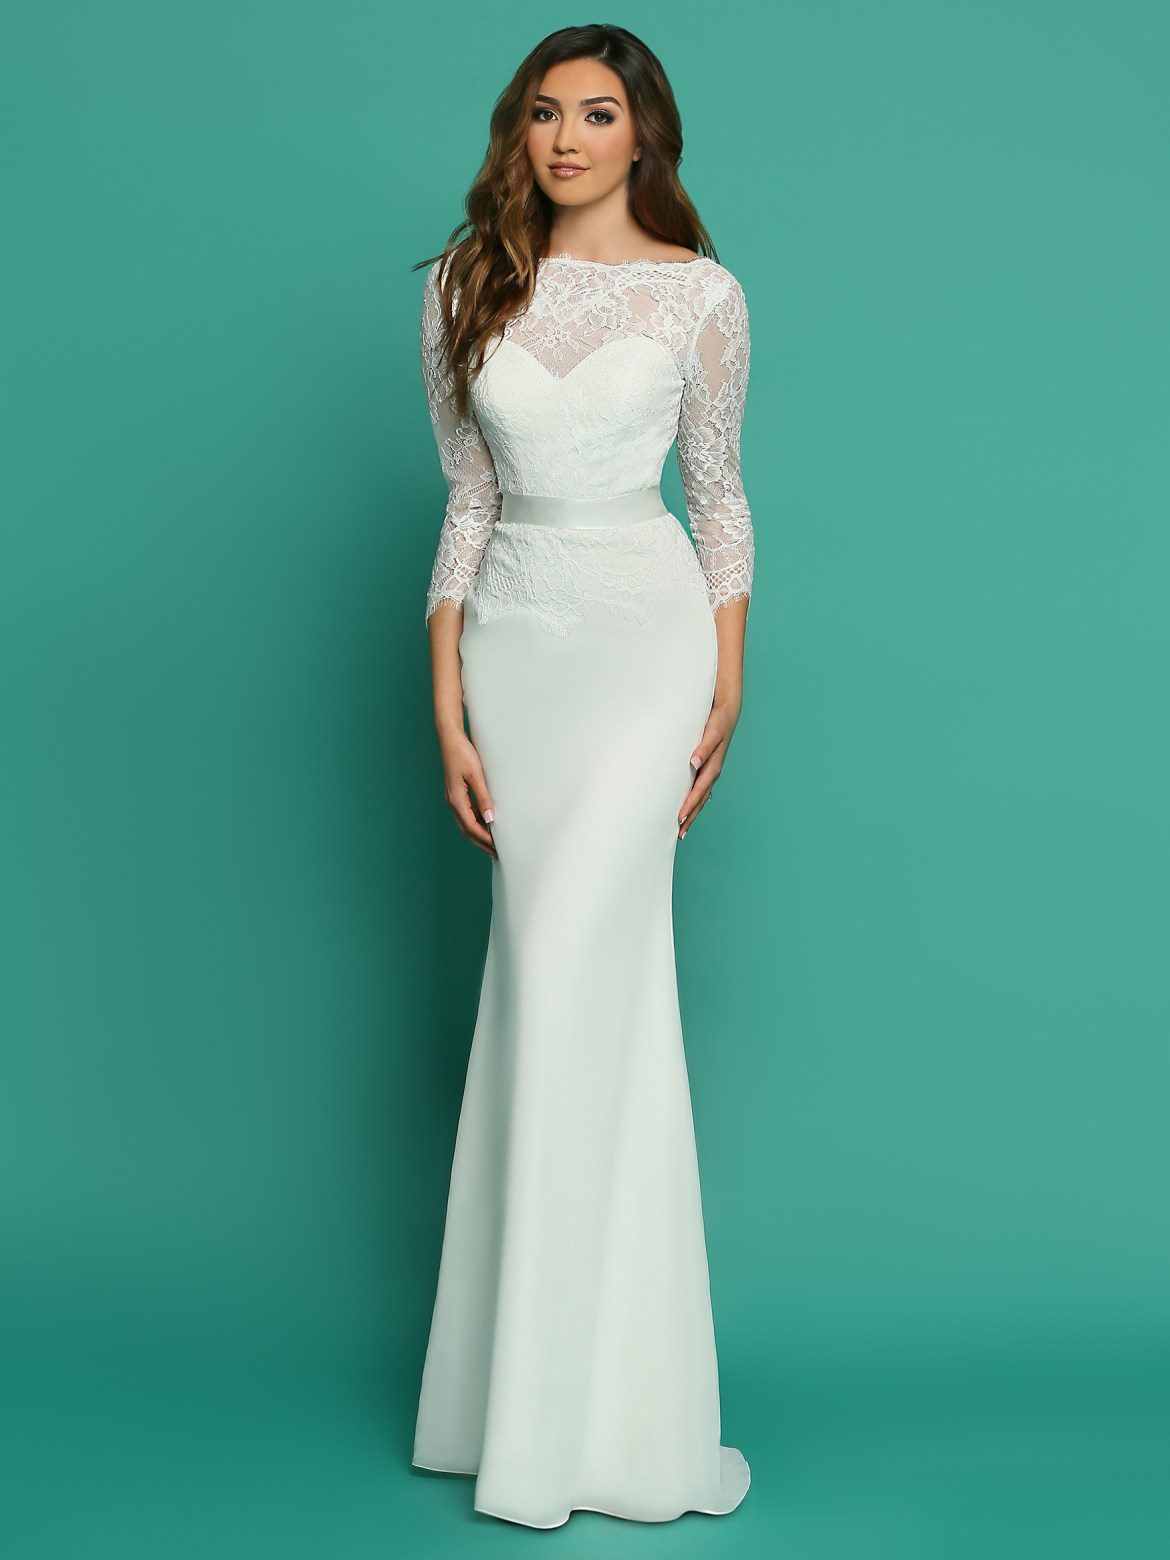 Stunning Wedding Dresses with Sleeves   Jackets - DaVinci Bridal Blog 1577c4d3a